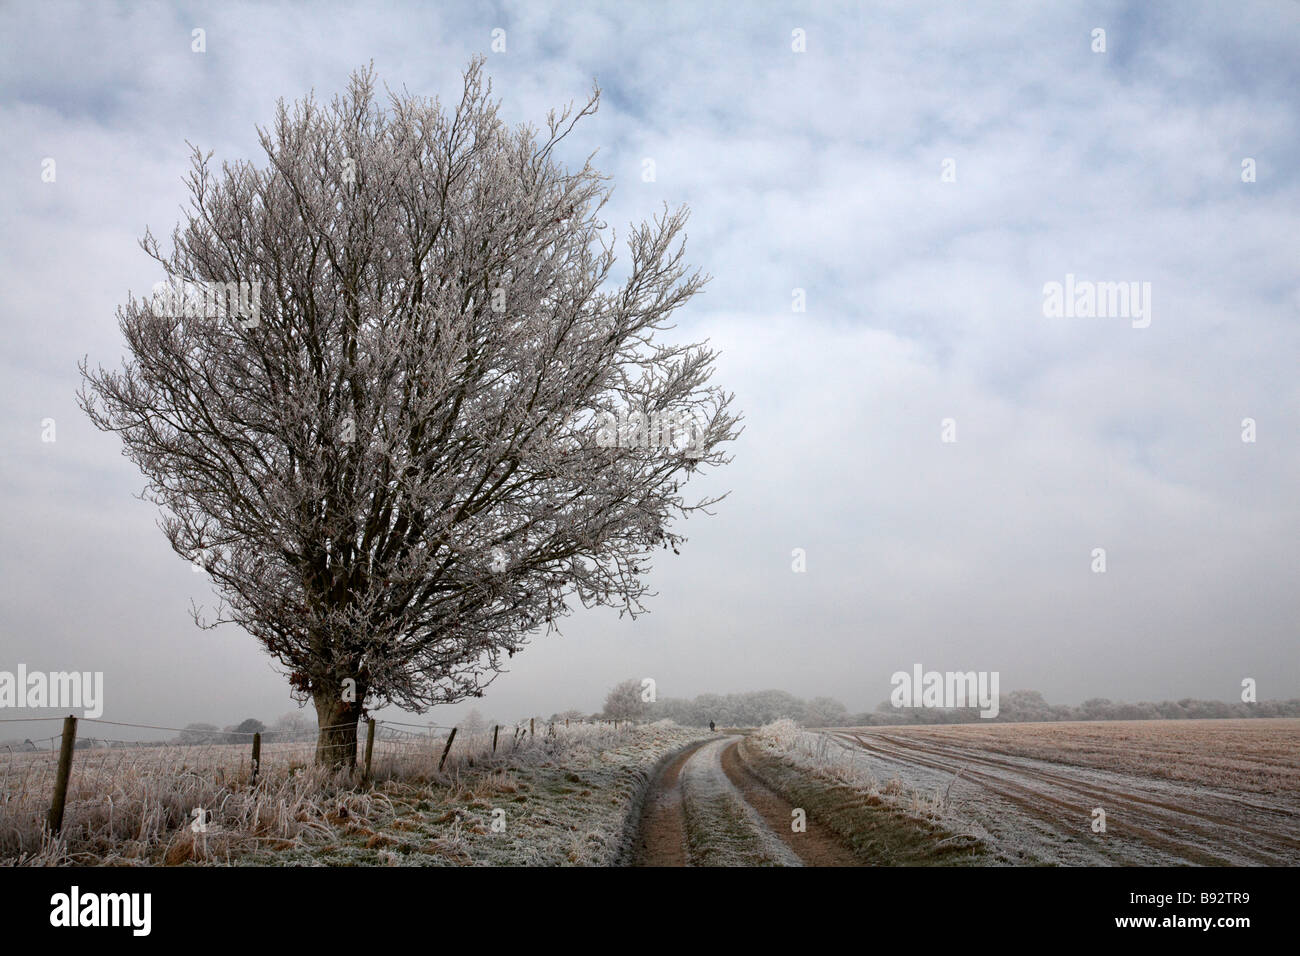 Track though Dorset countryside covered with hoar frost, at Dorset in January - Stock Image